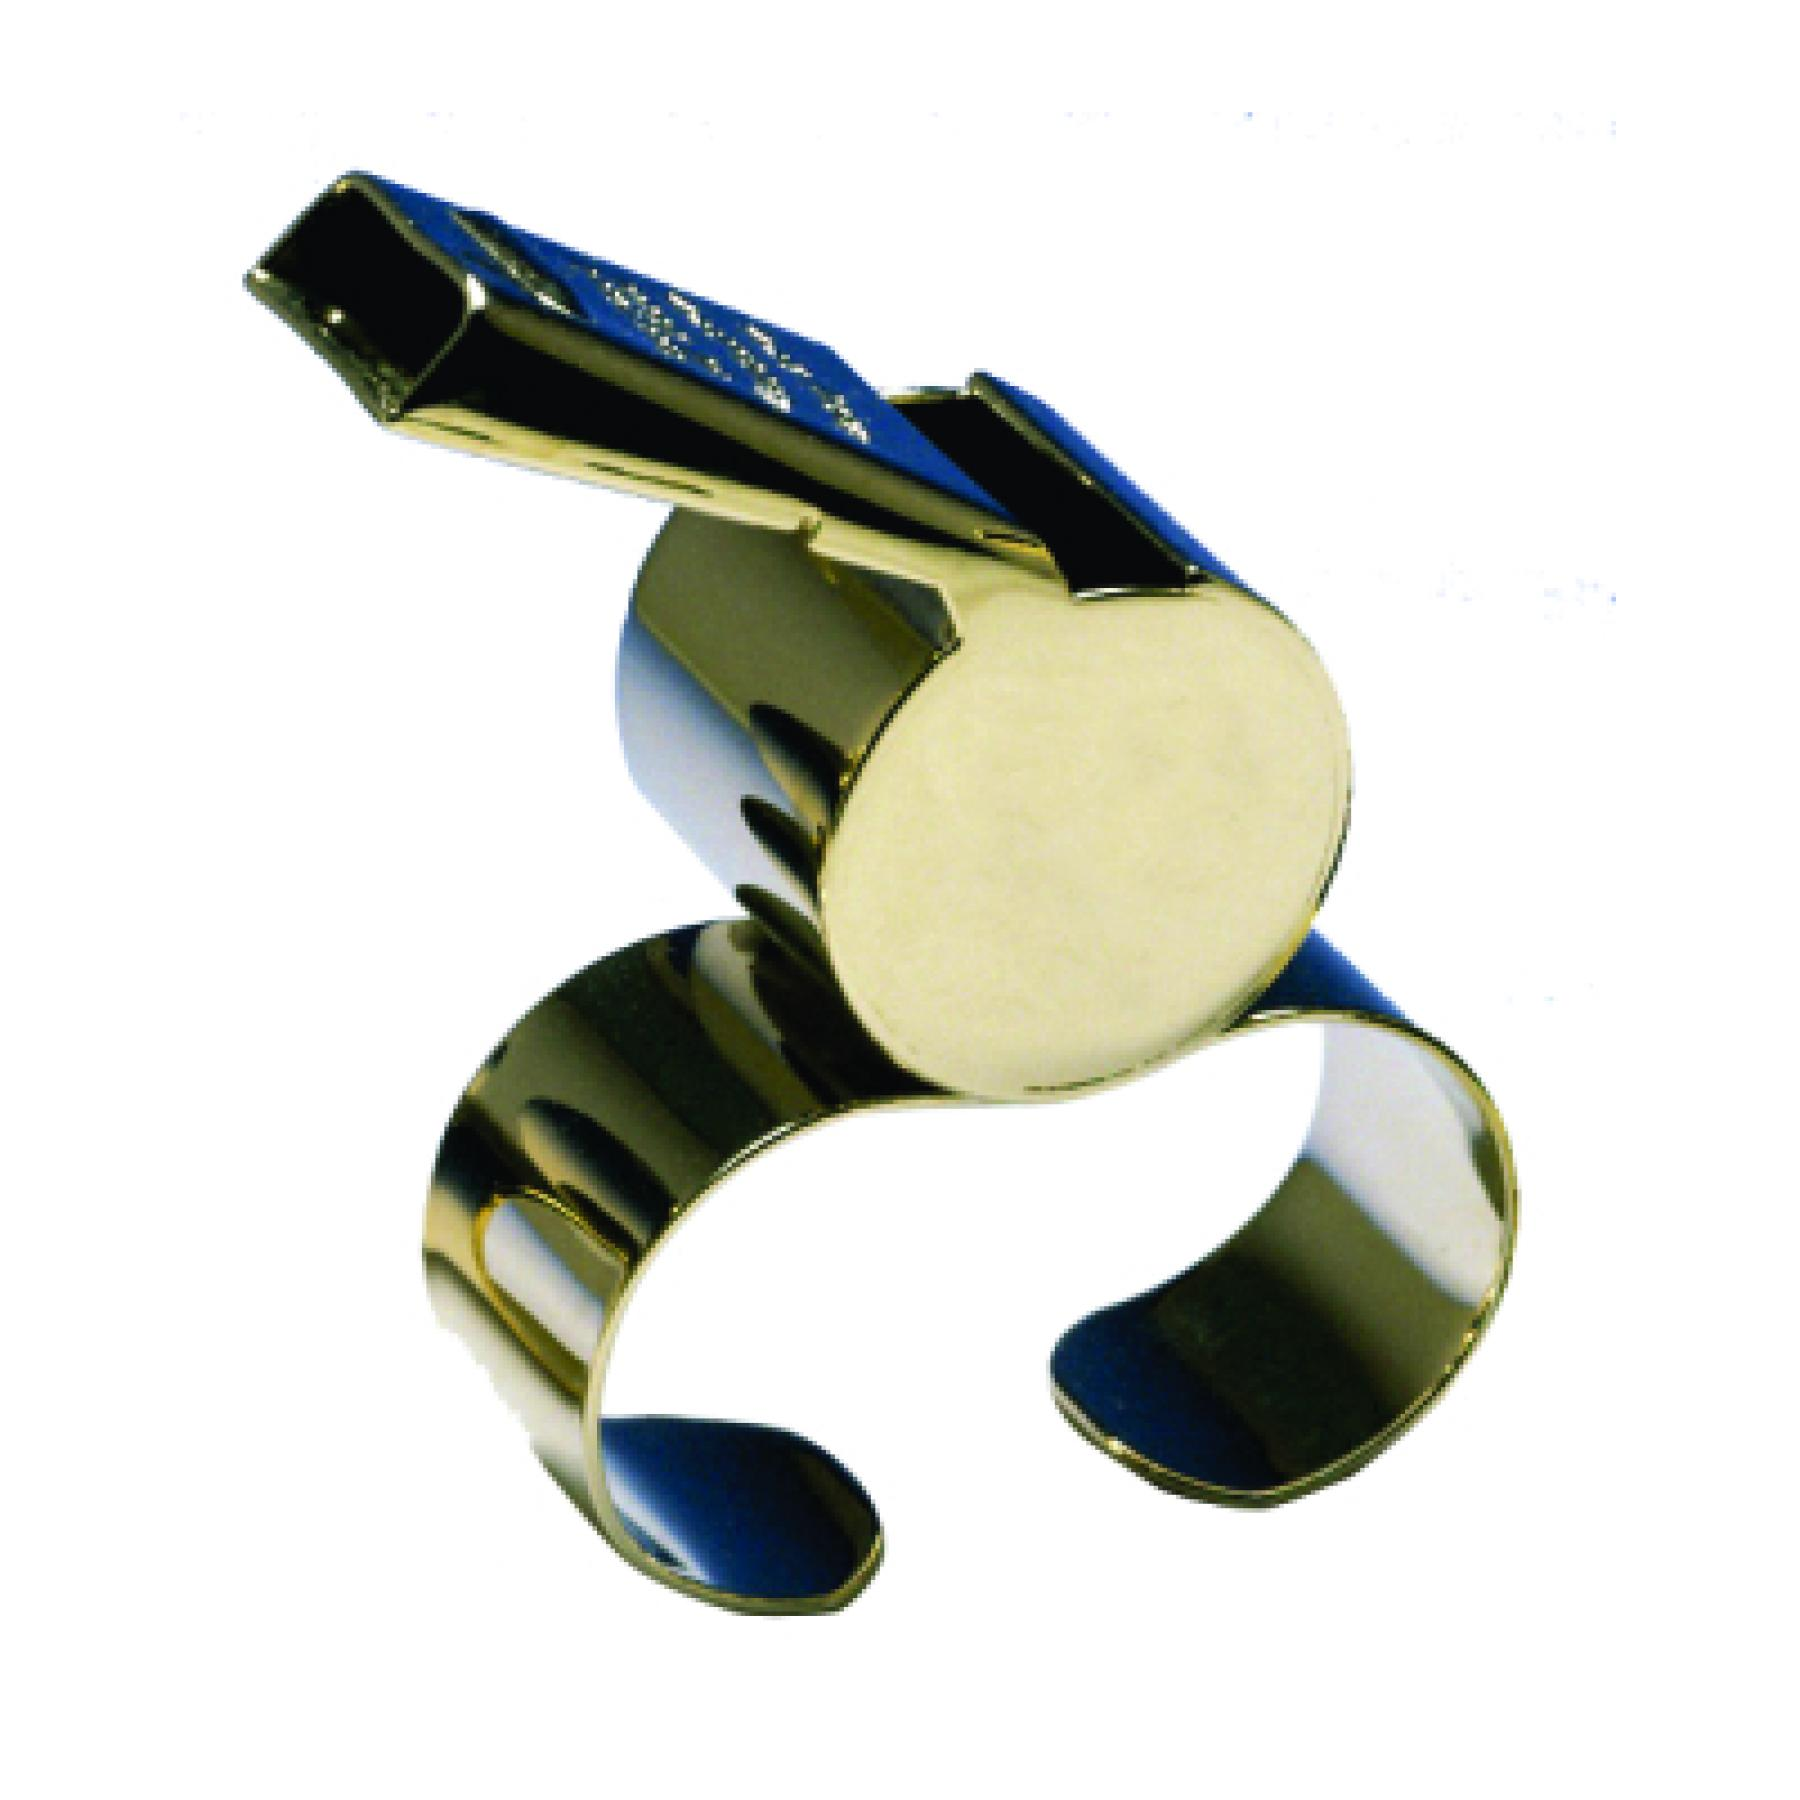 Acme 477/58.5 Thunderer Brass Fingergrip Whistle